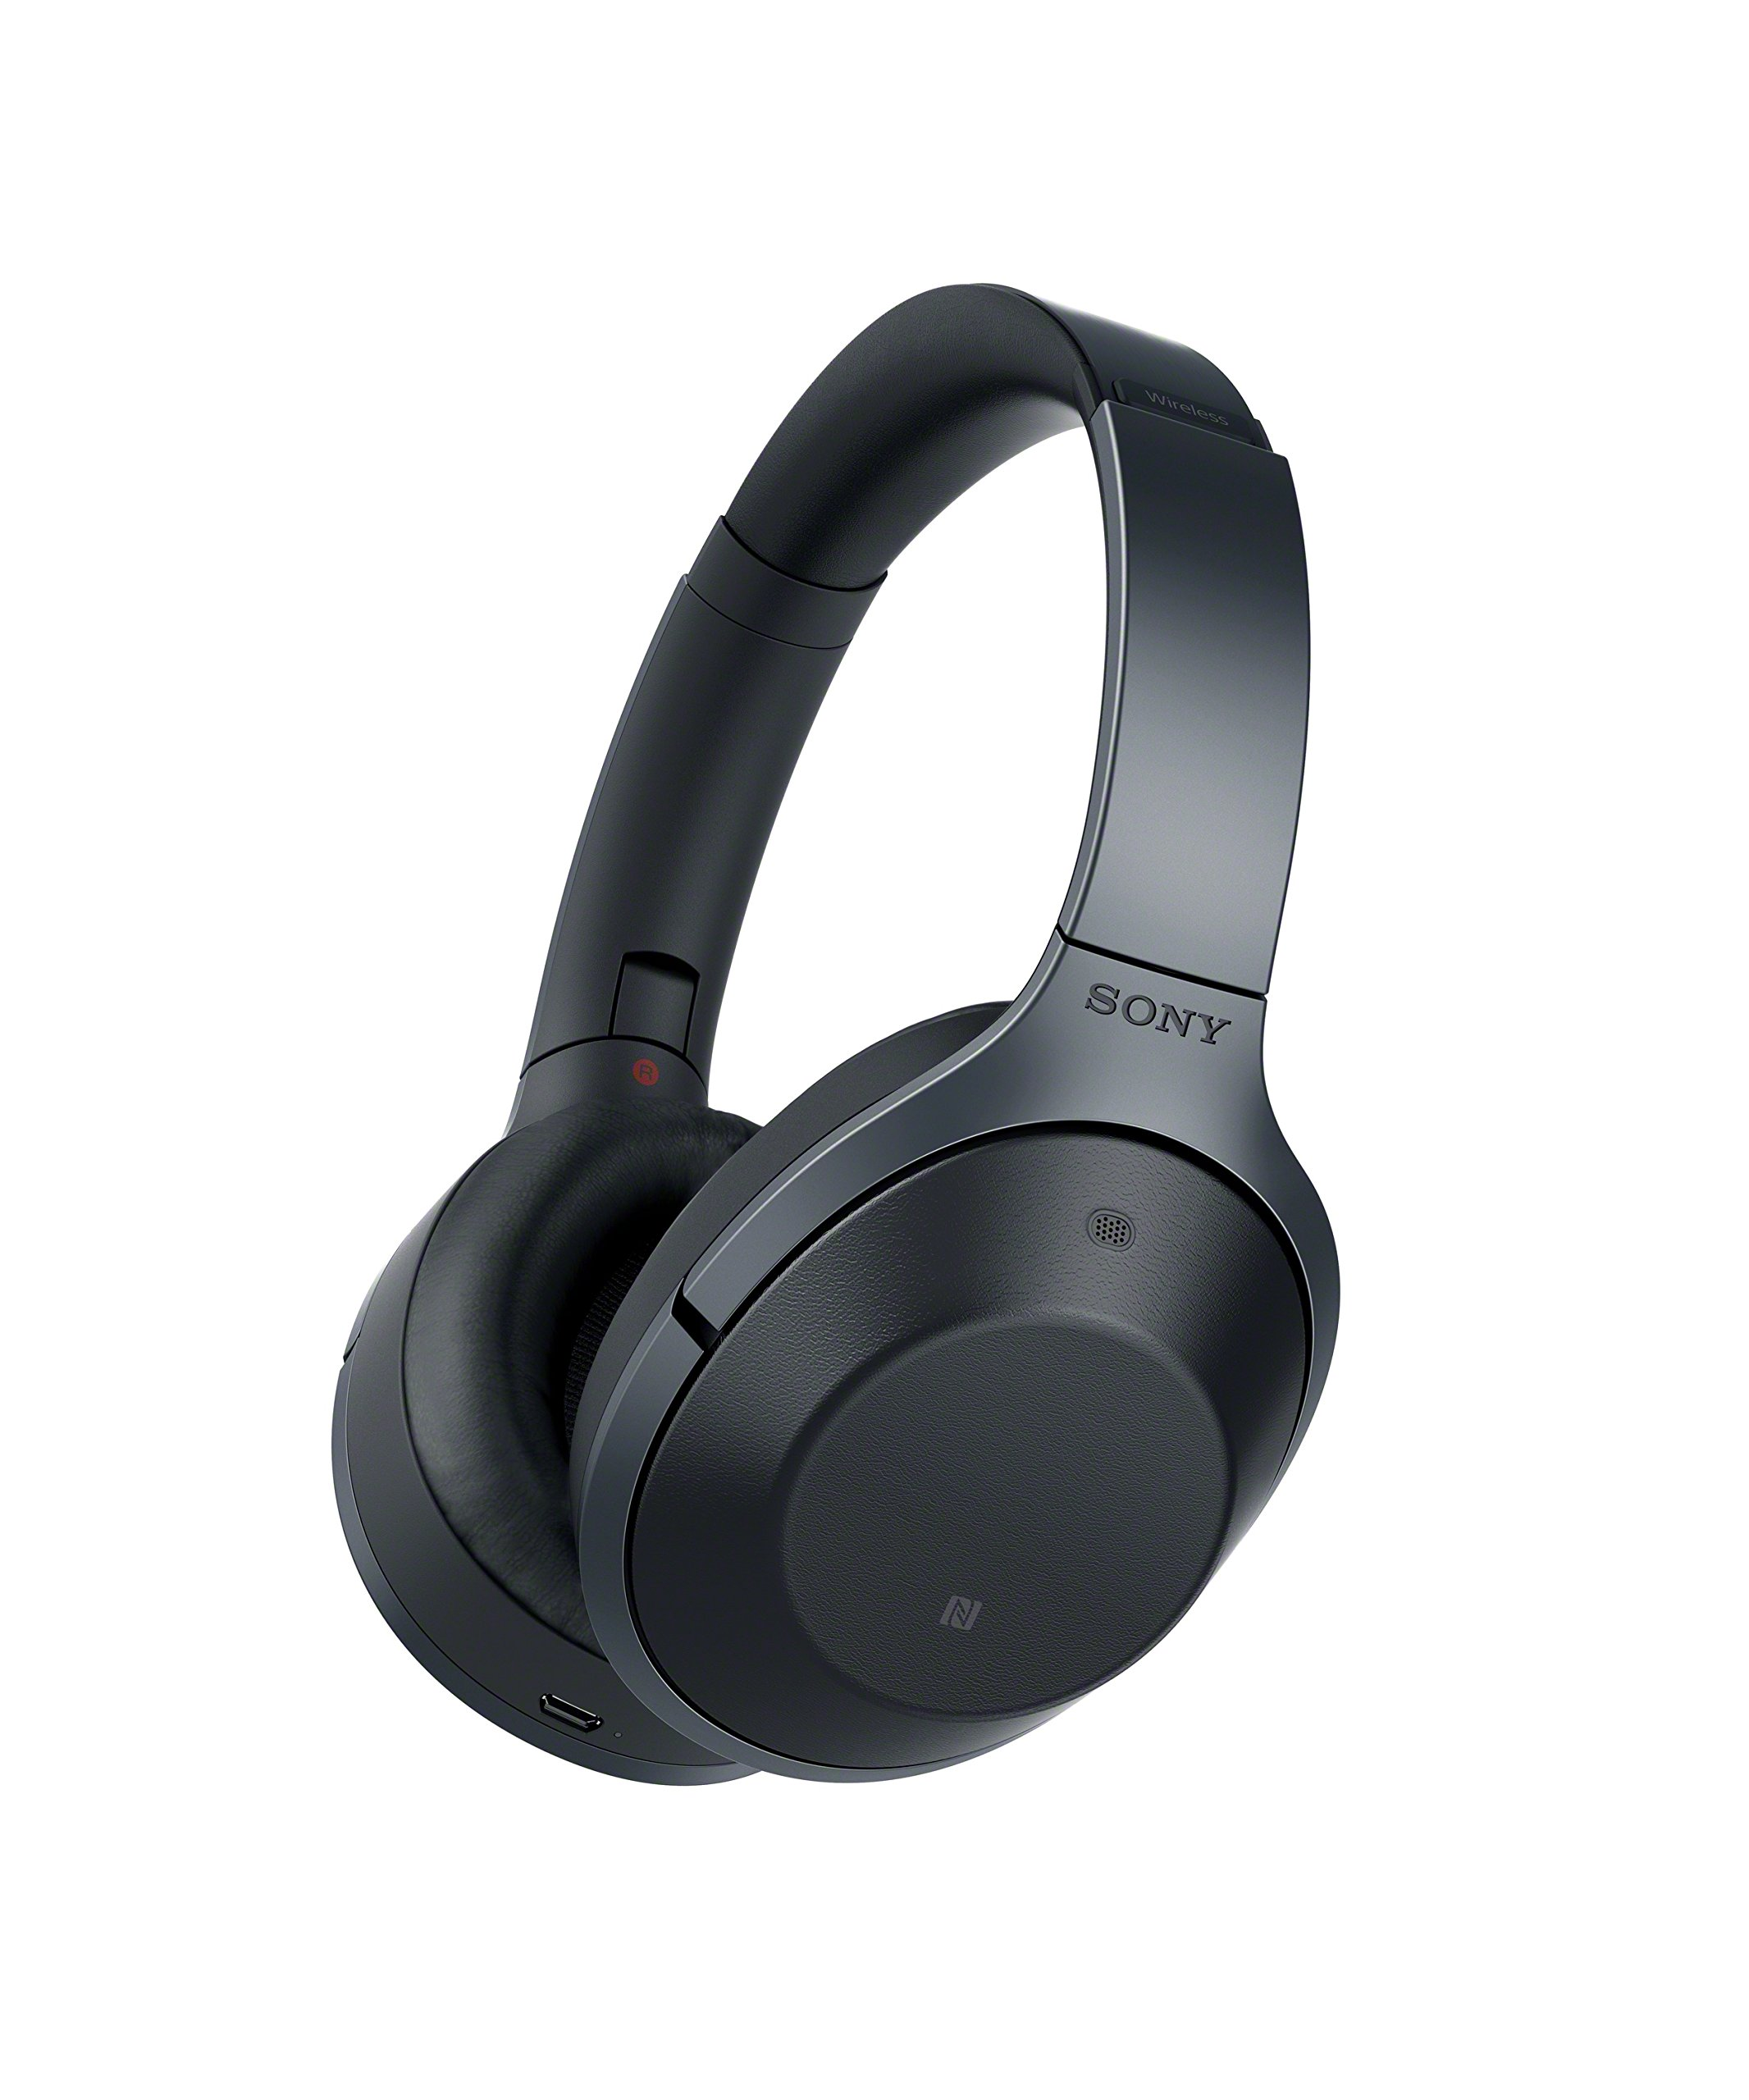 Sony Premium Noise Cancelling, Bluetooth Headphone, Black (MDR1000X/B) by Sony